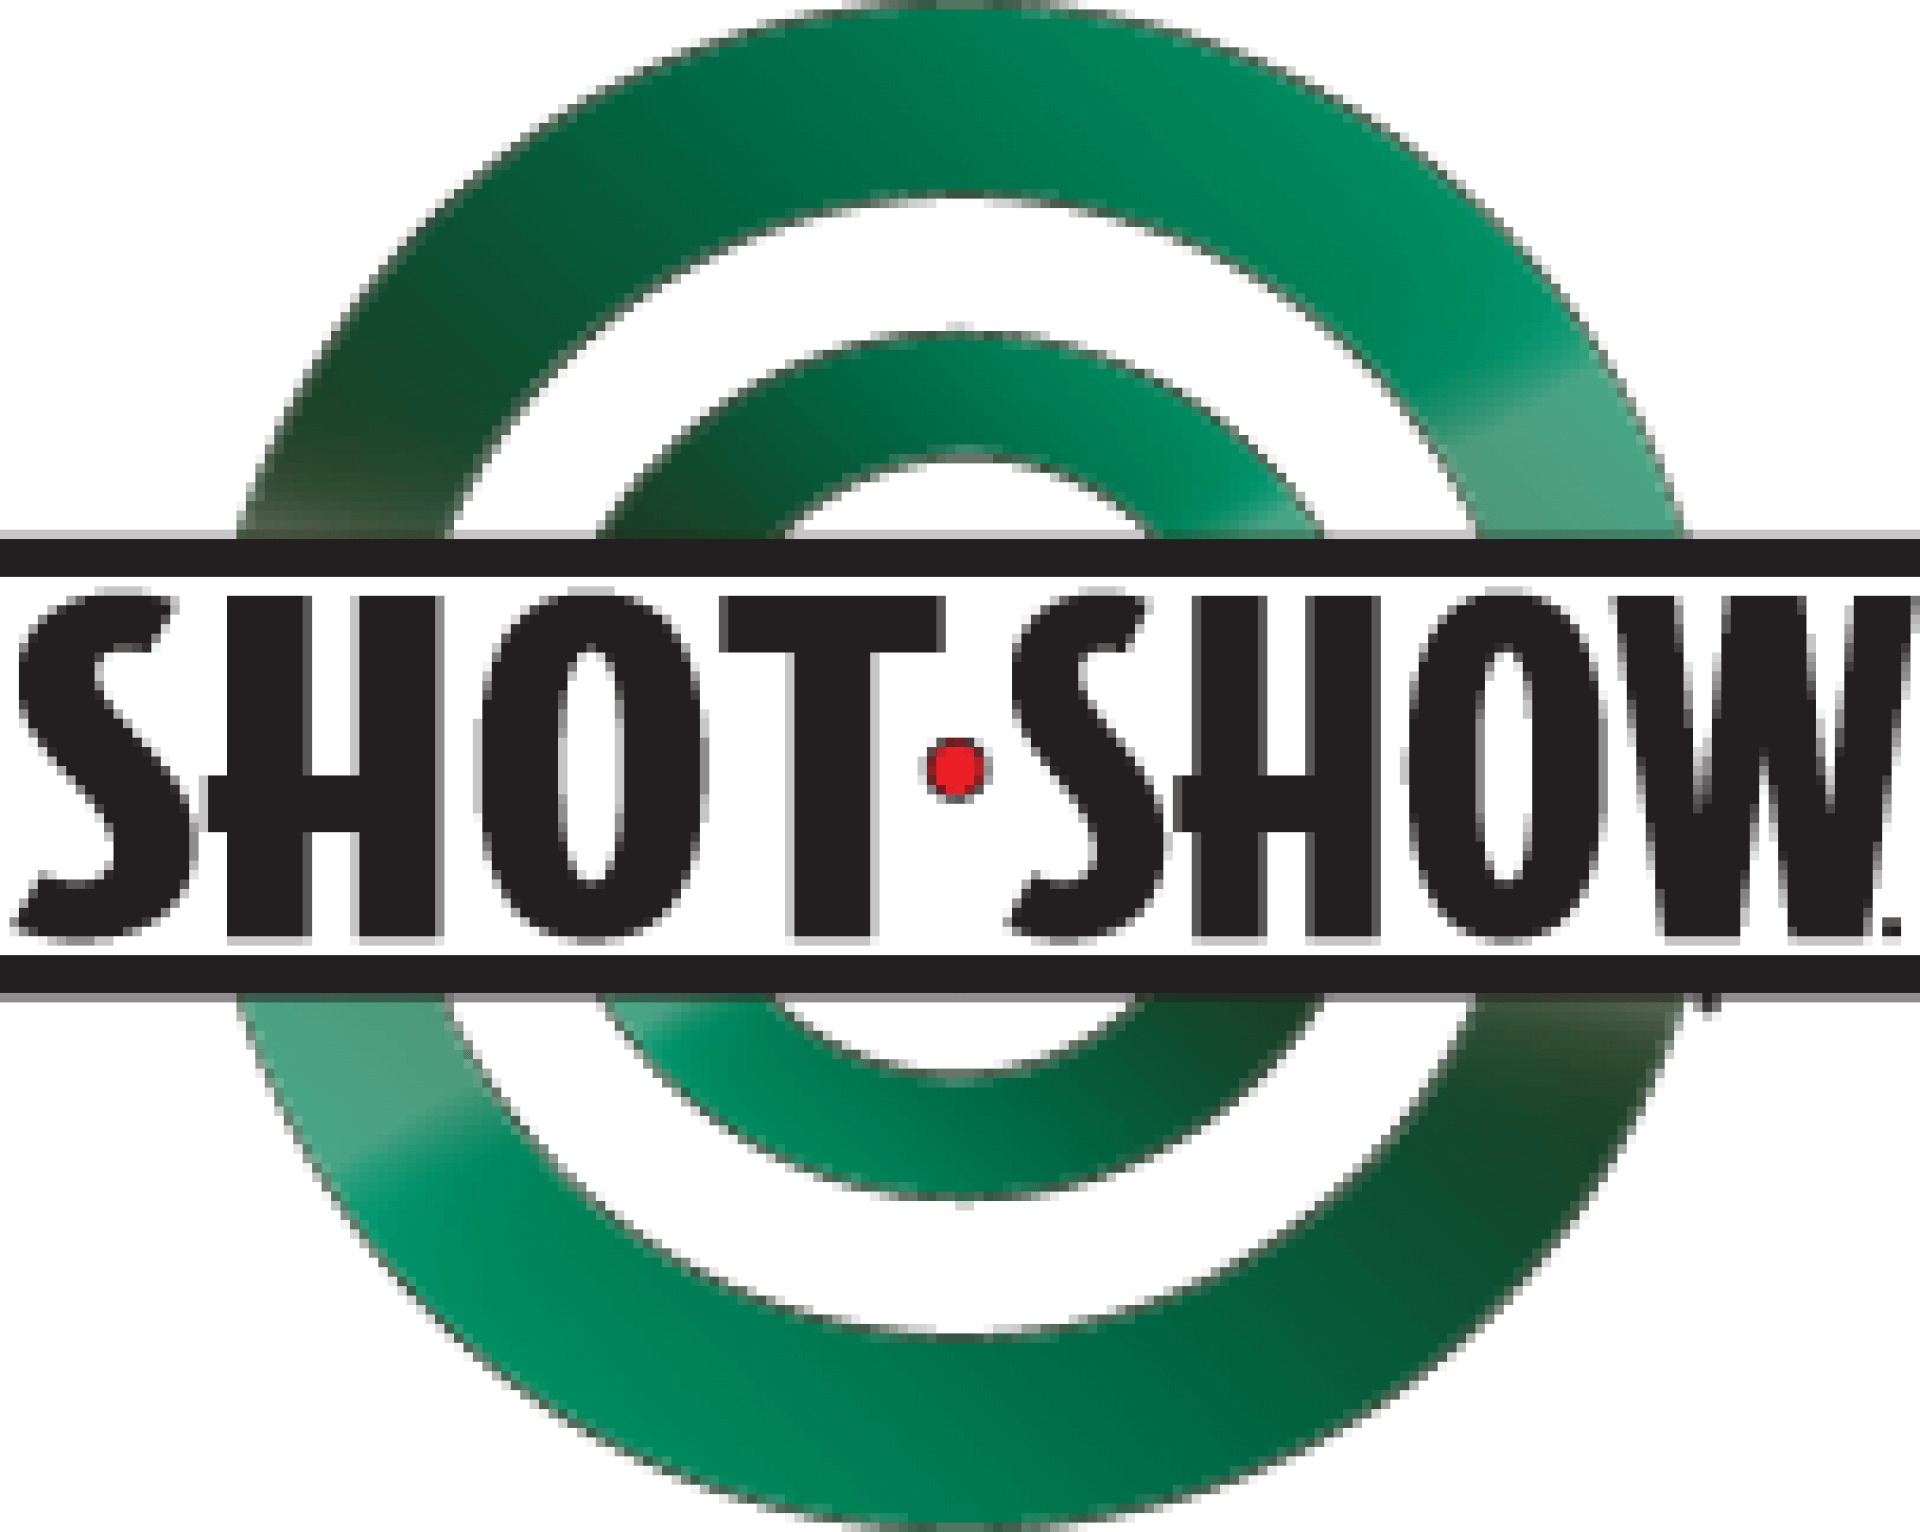 Hexmag booth 208 at Shot Show 2016